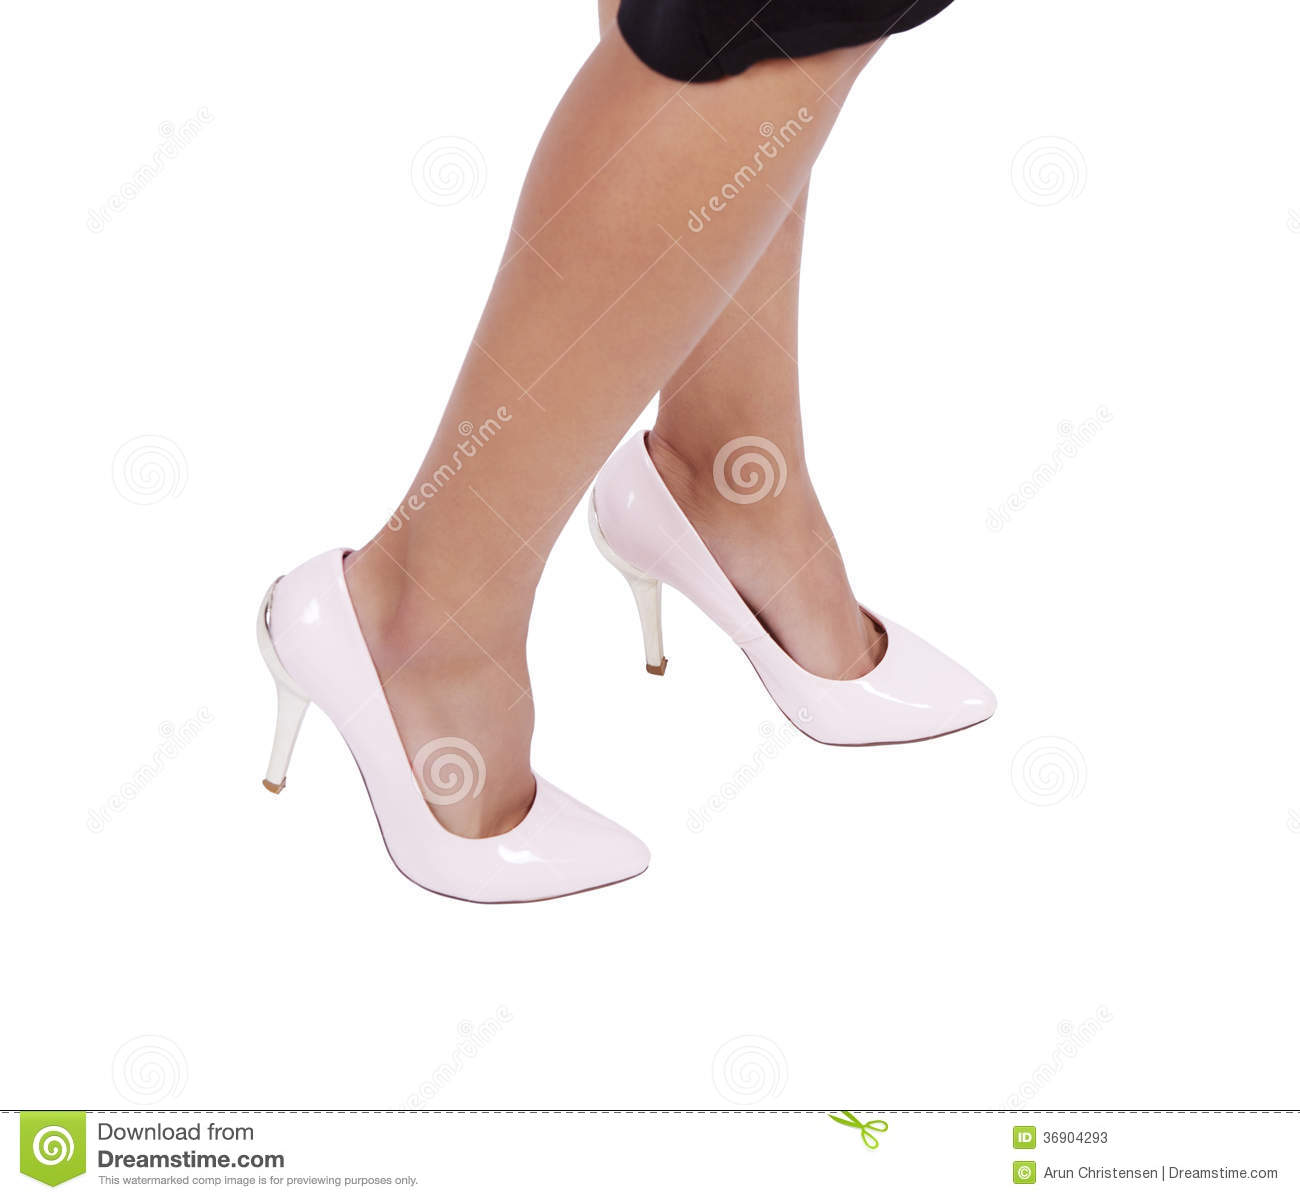 Woman Wearing Leather High Heels Stilettos Shoes Stock Photos - Image